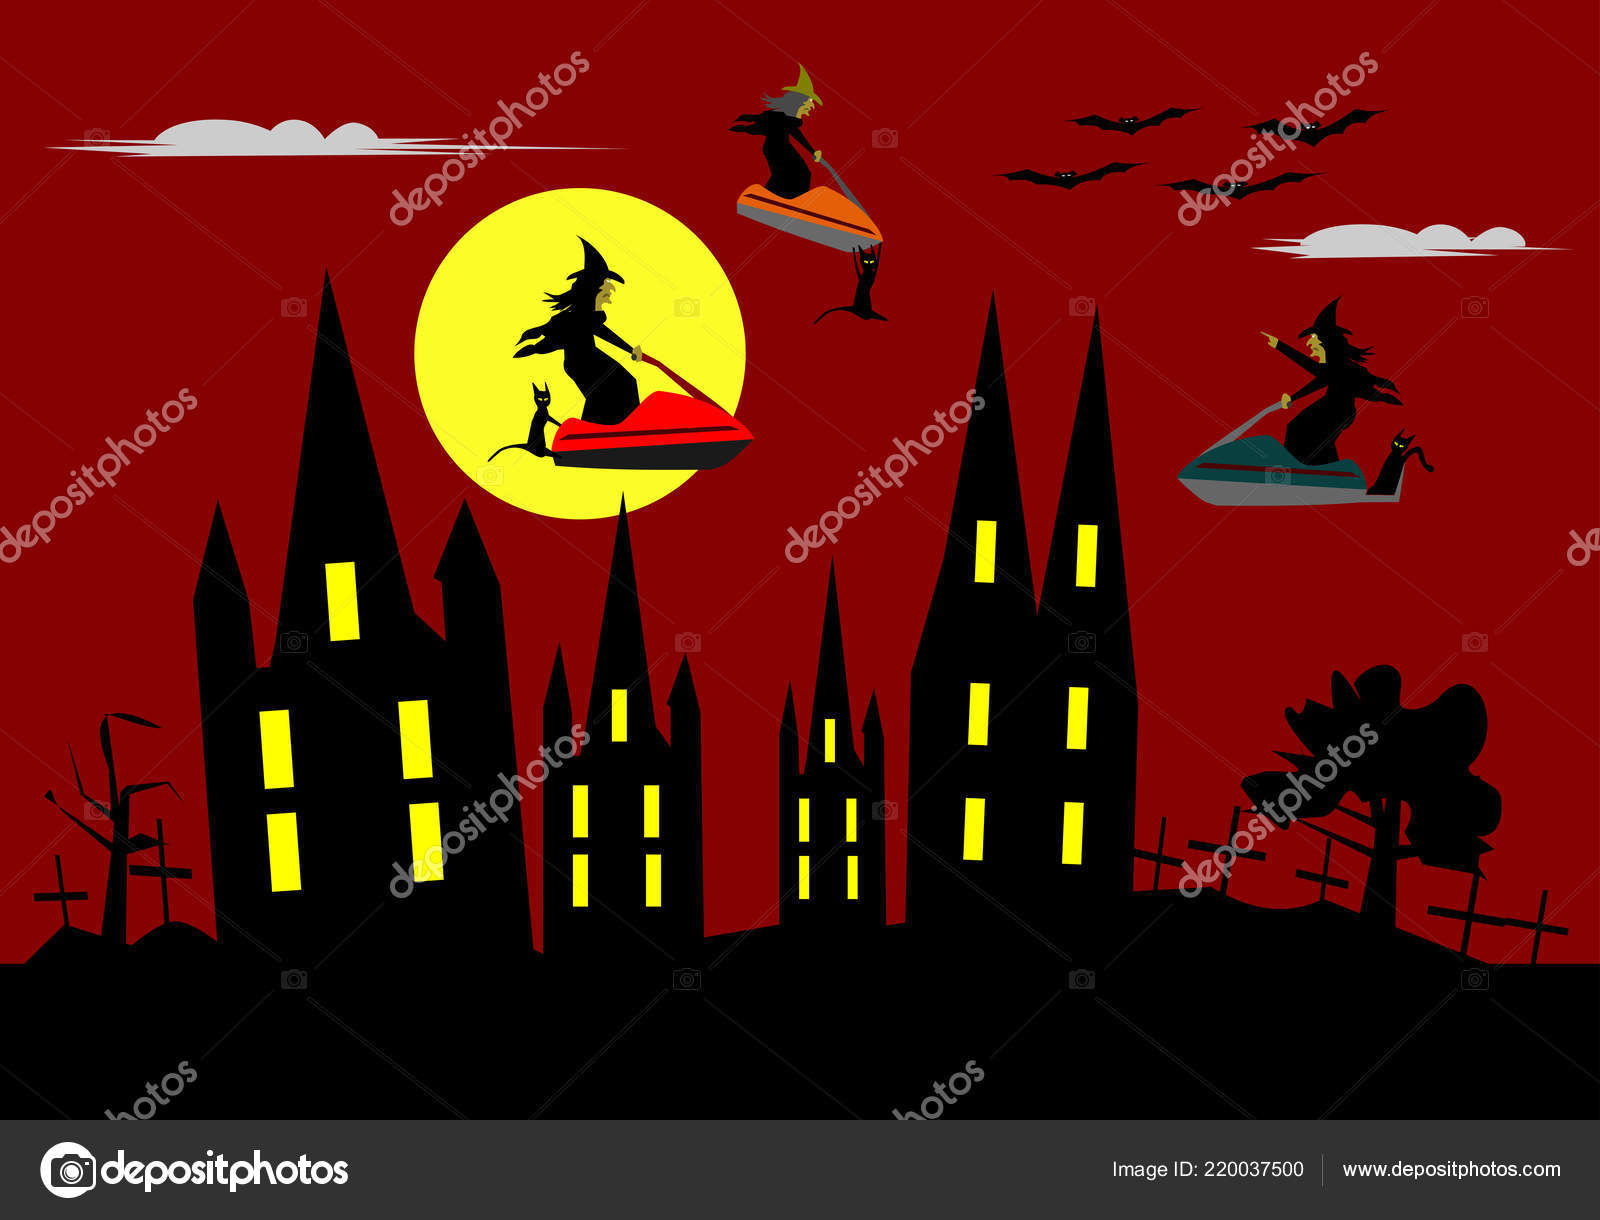 Funny Halloween Three Witches Riding Jet Ski Red Sky Moon